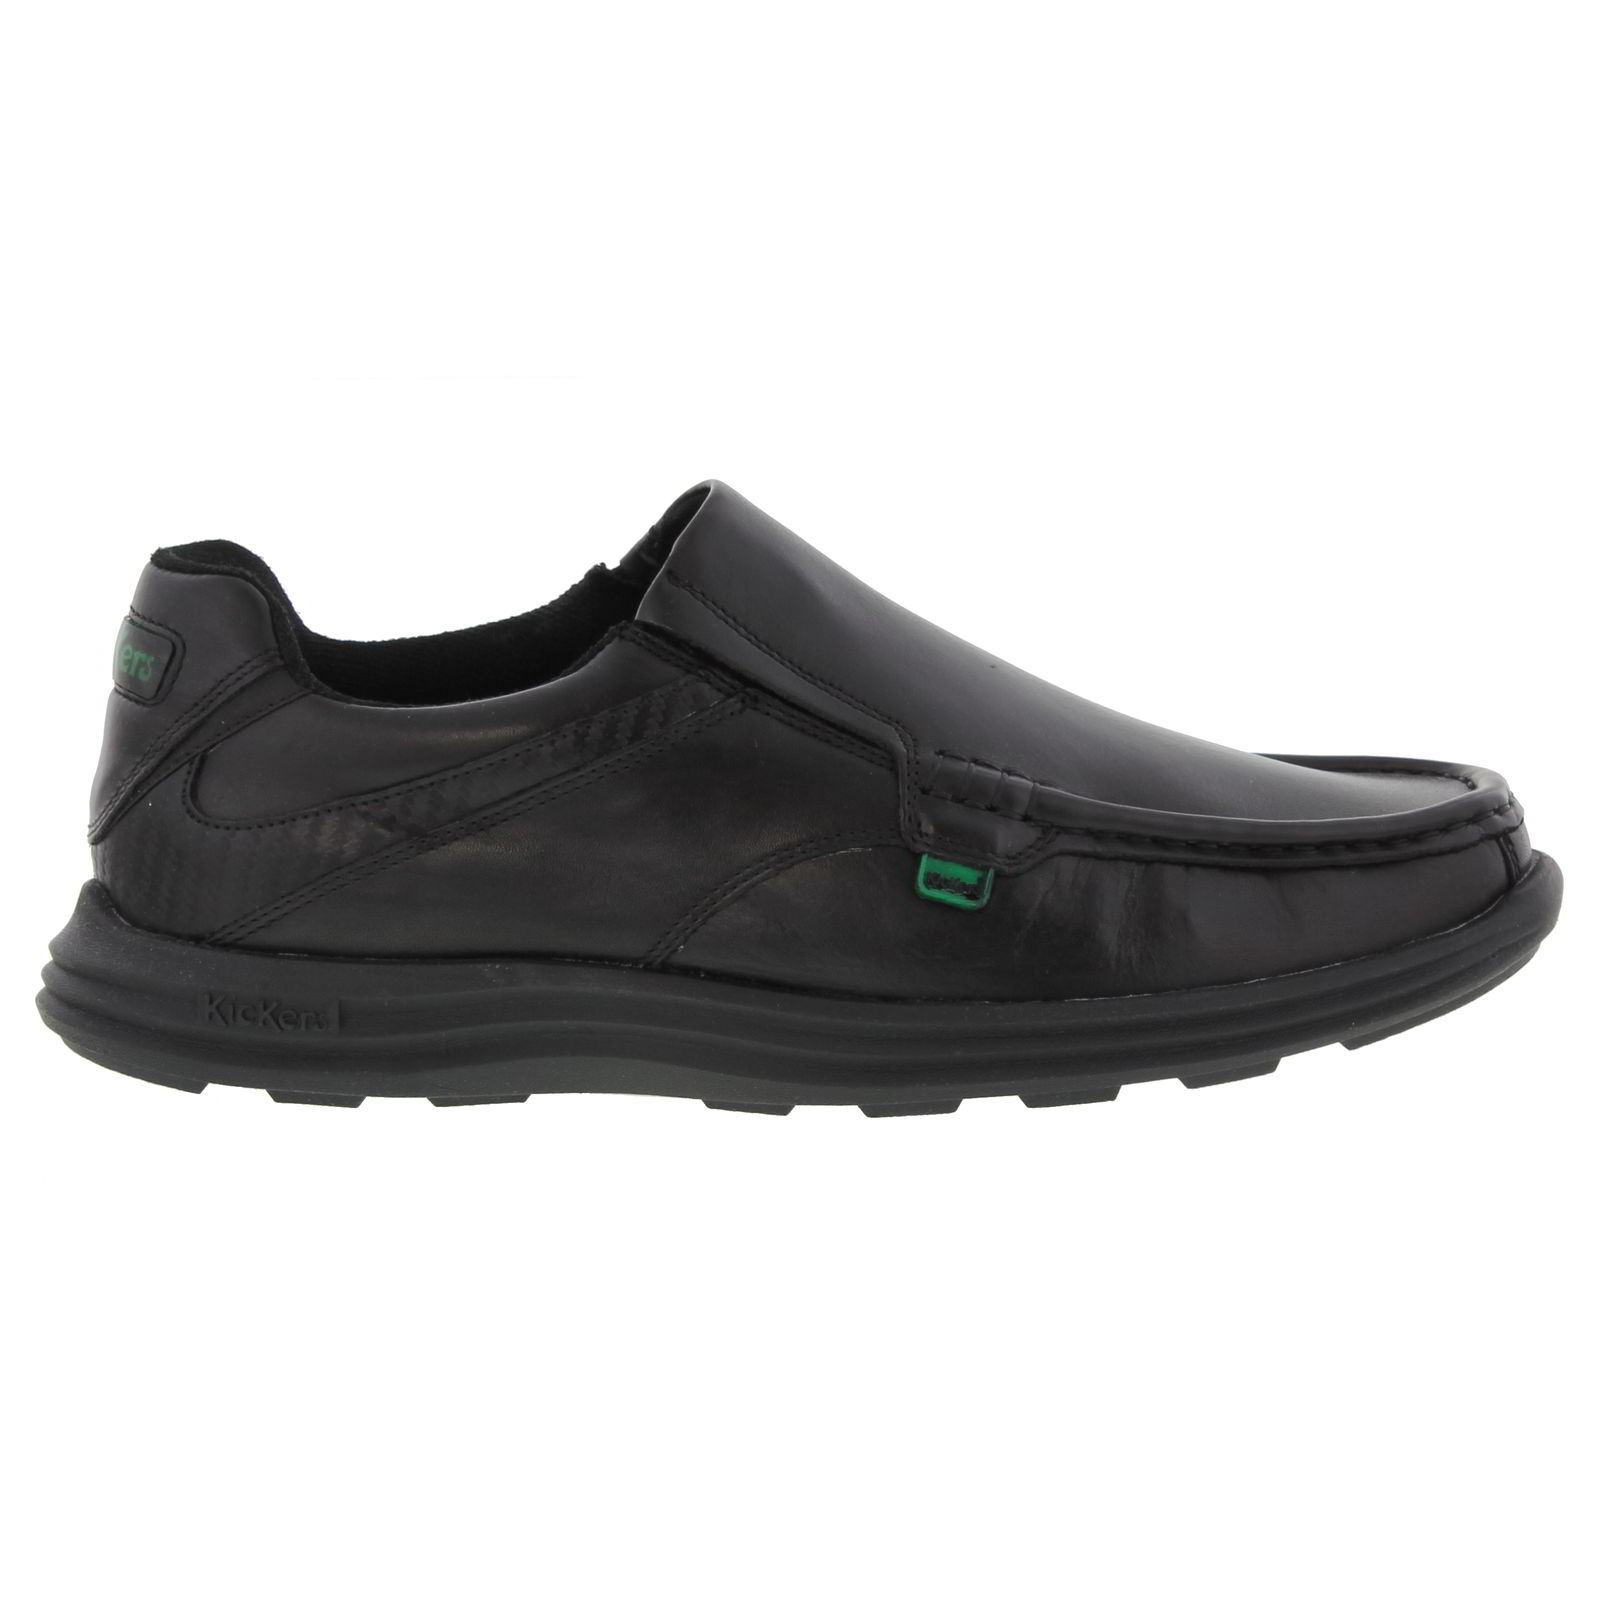 Green Ease Slippers On Shoppinder